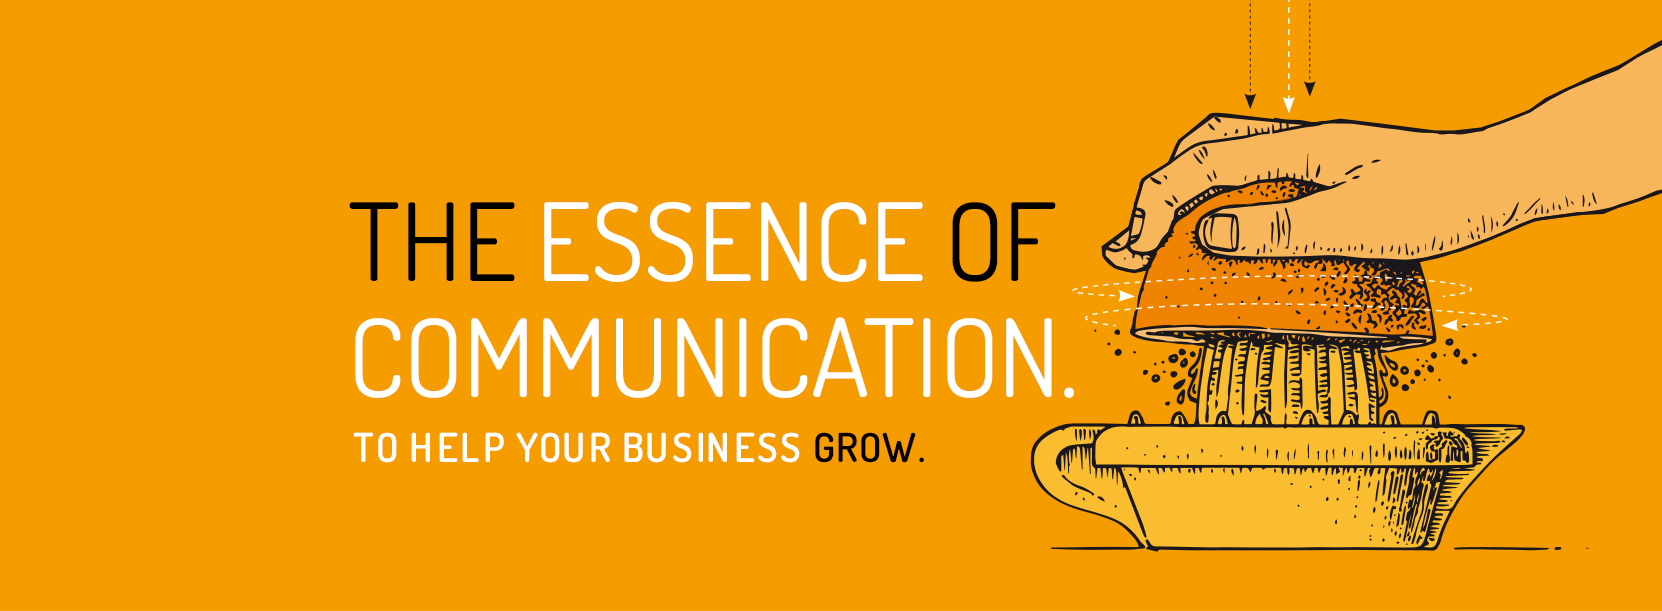 The essence of communication. To help your business grow.